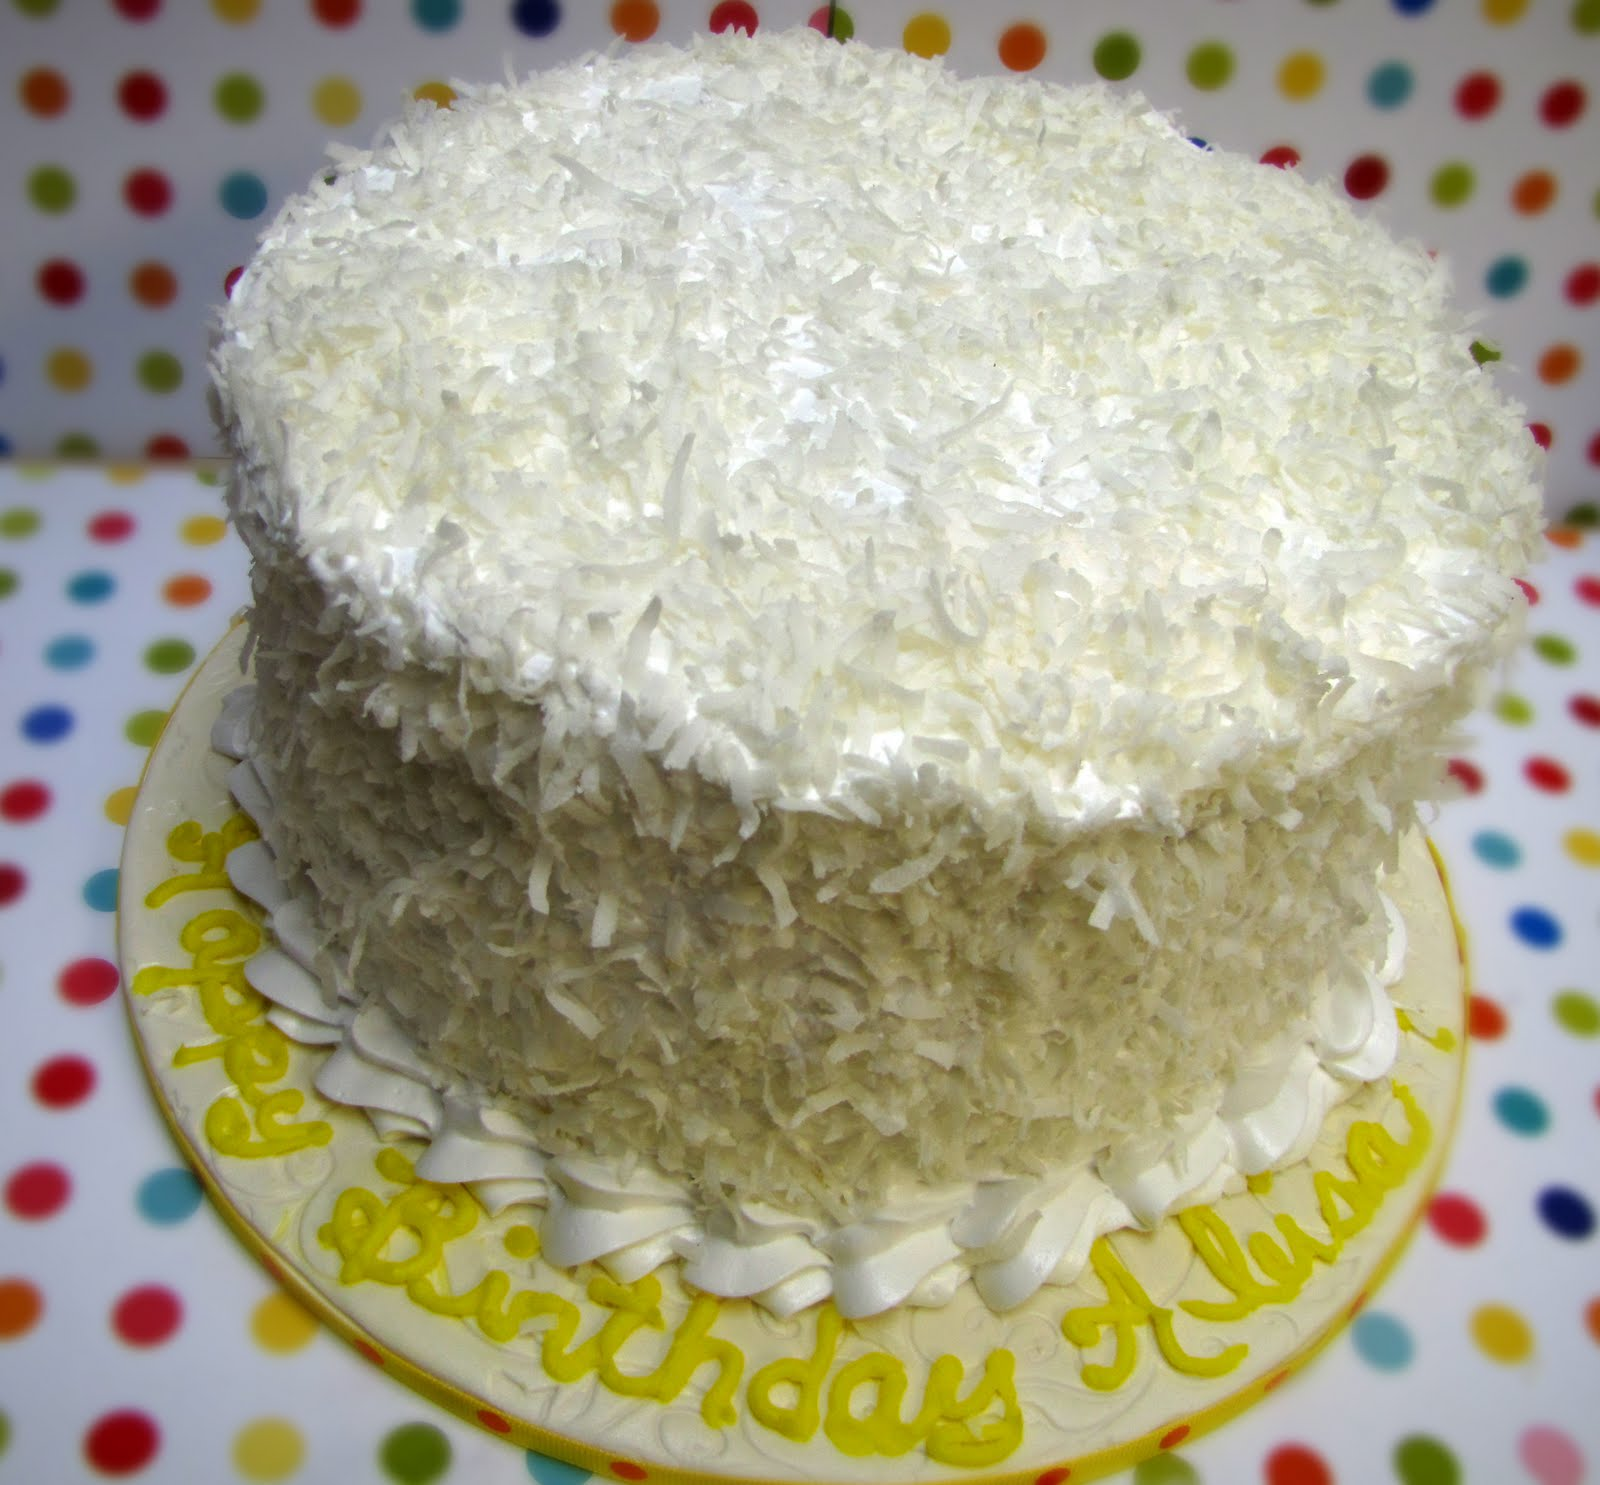 Sugar Mama's Cakery: Coconut Cream Cake